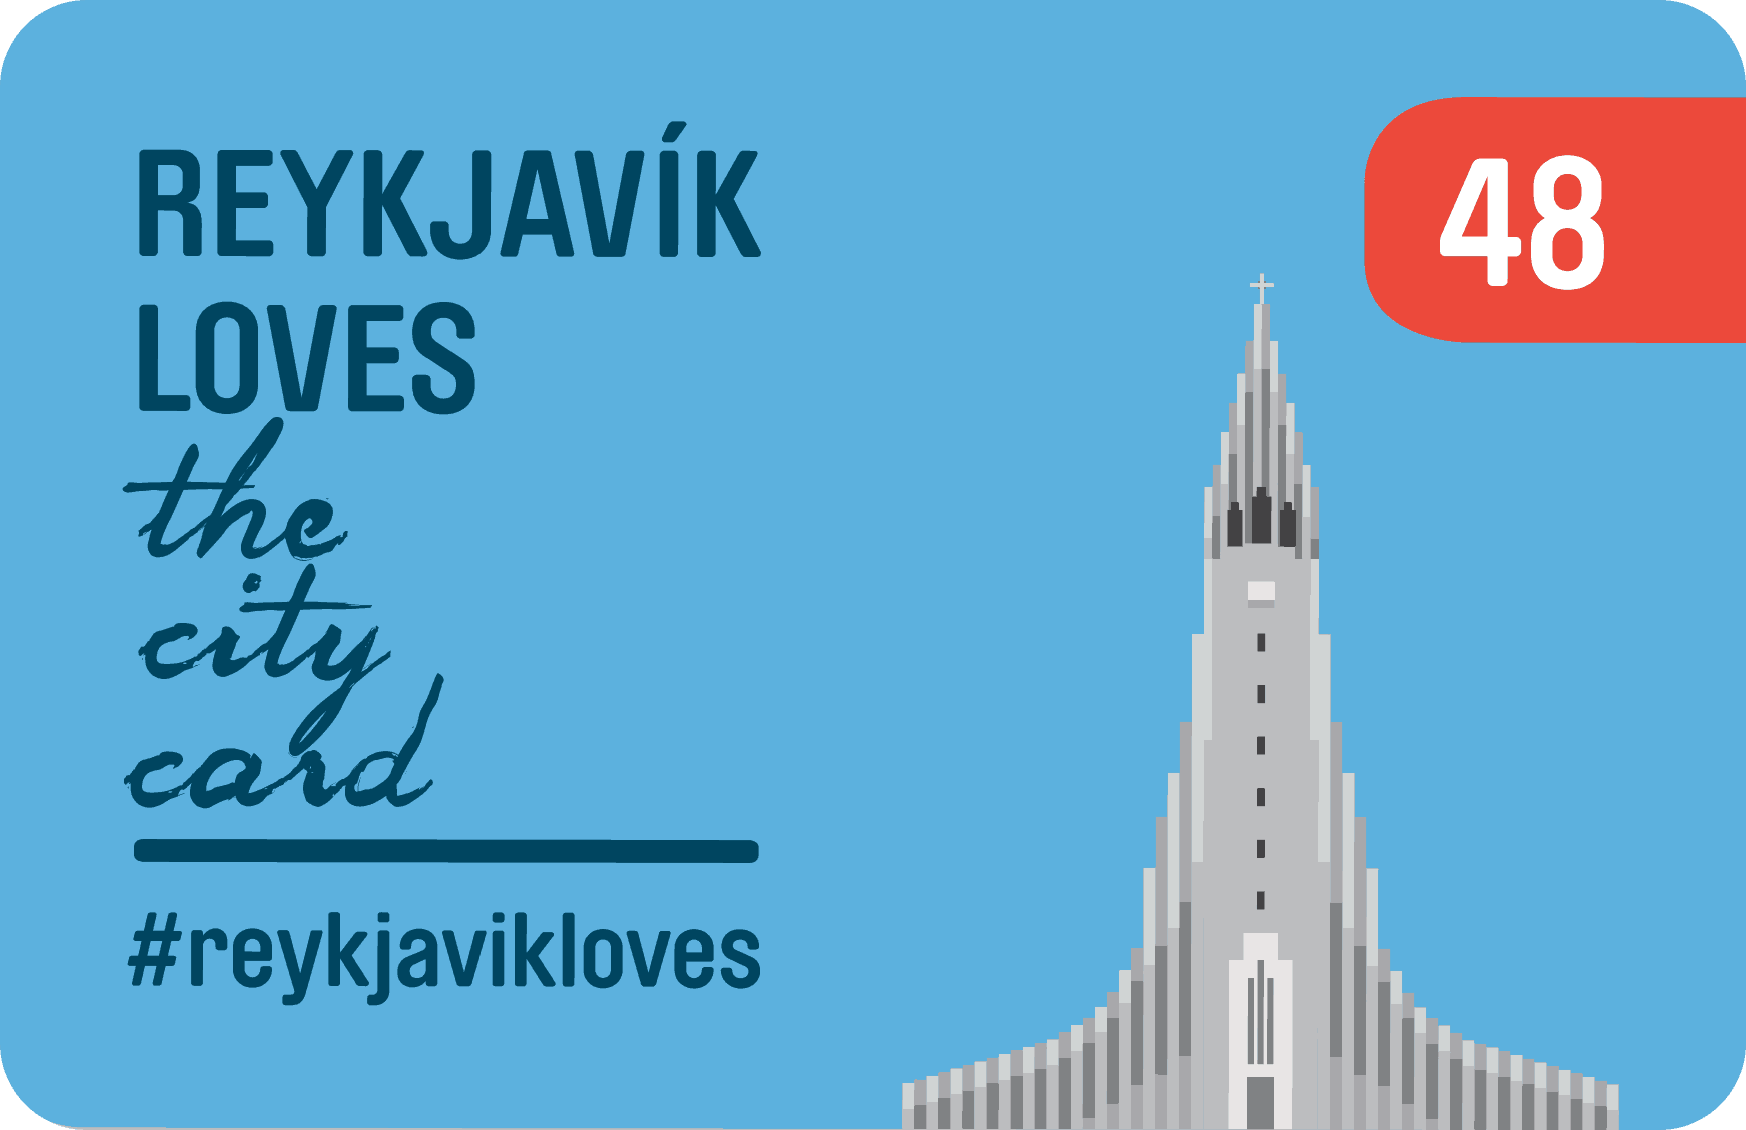 The Reykjavik City Card 48-hour pass